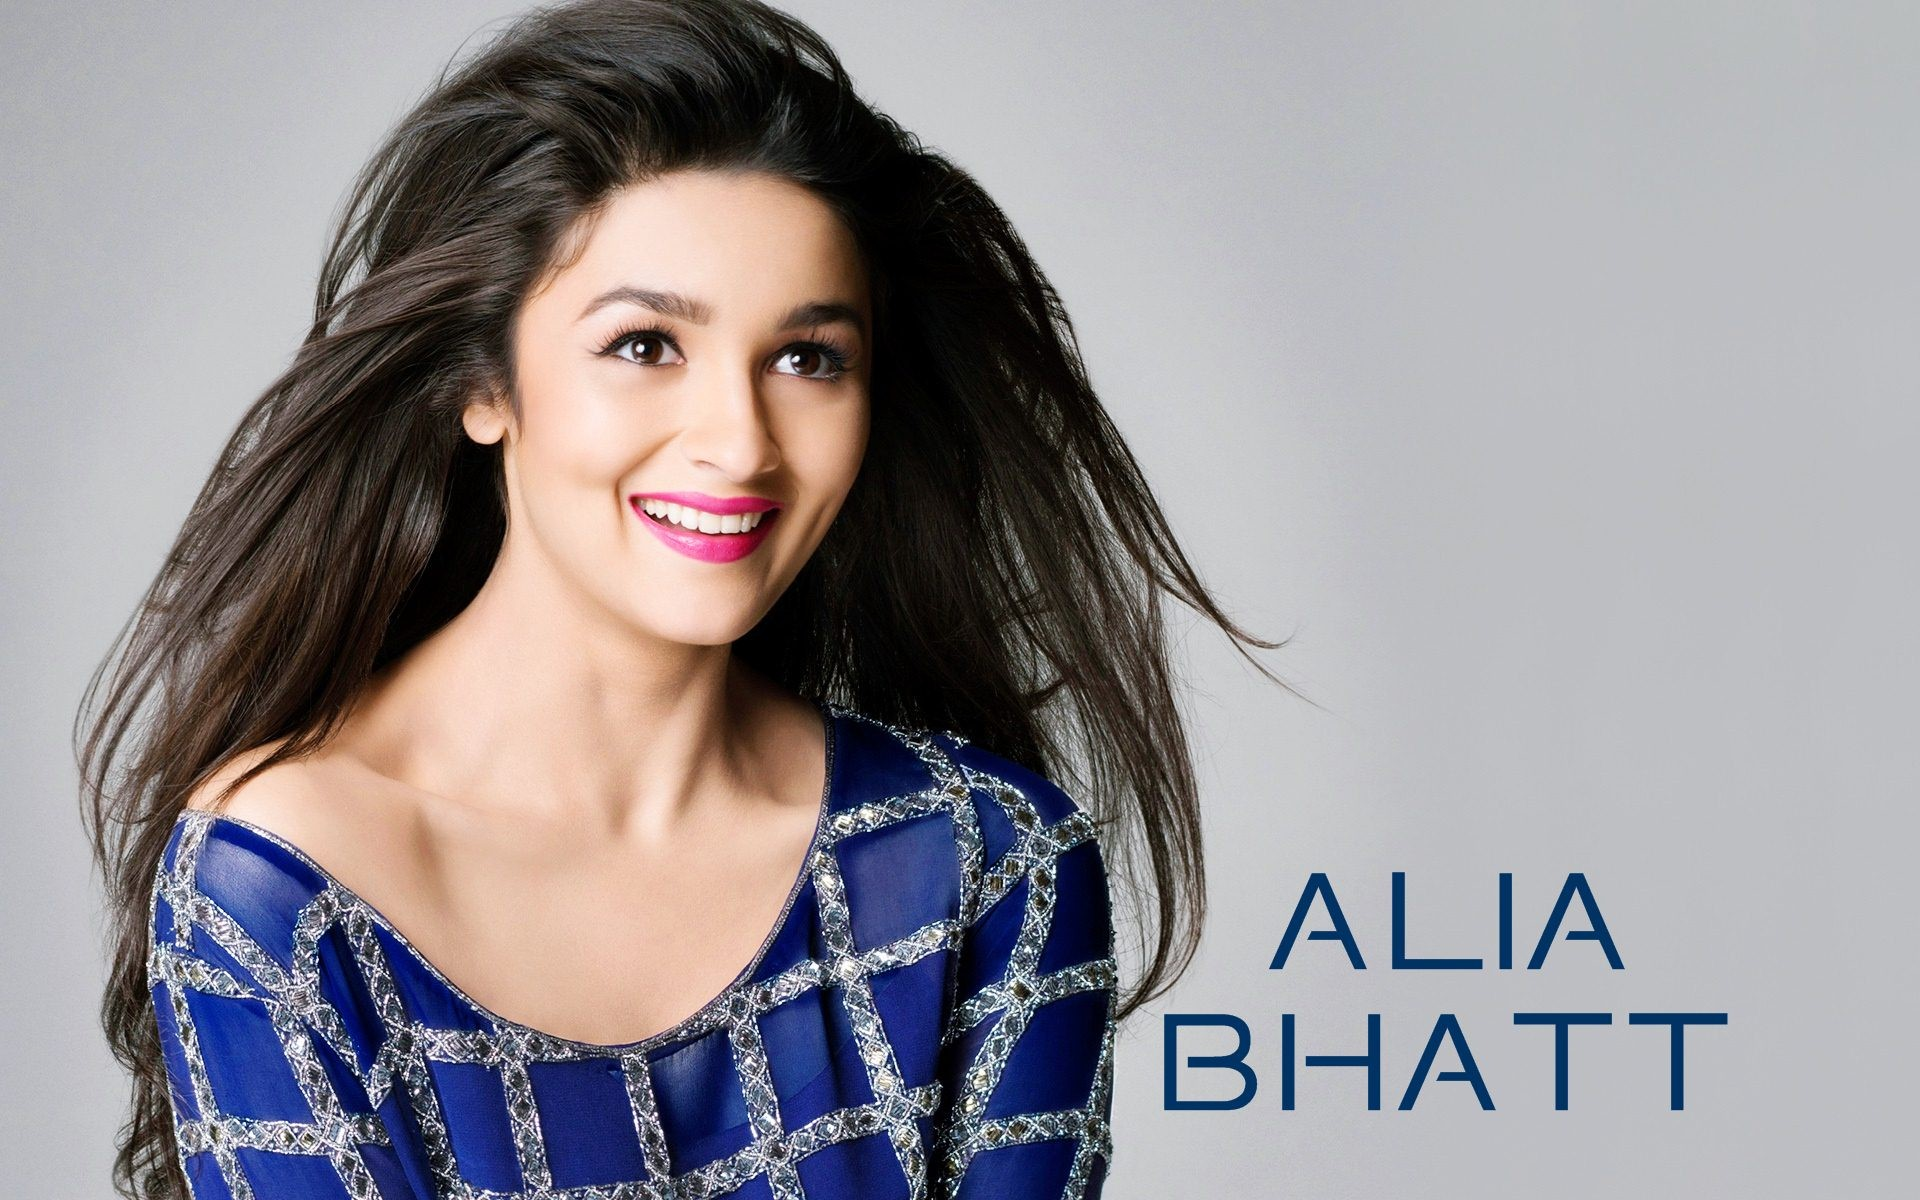 Alia bhatt actress cute wallpaper